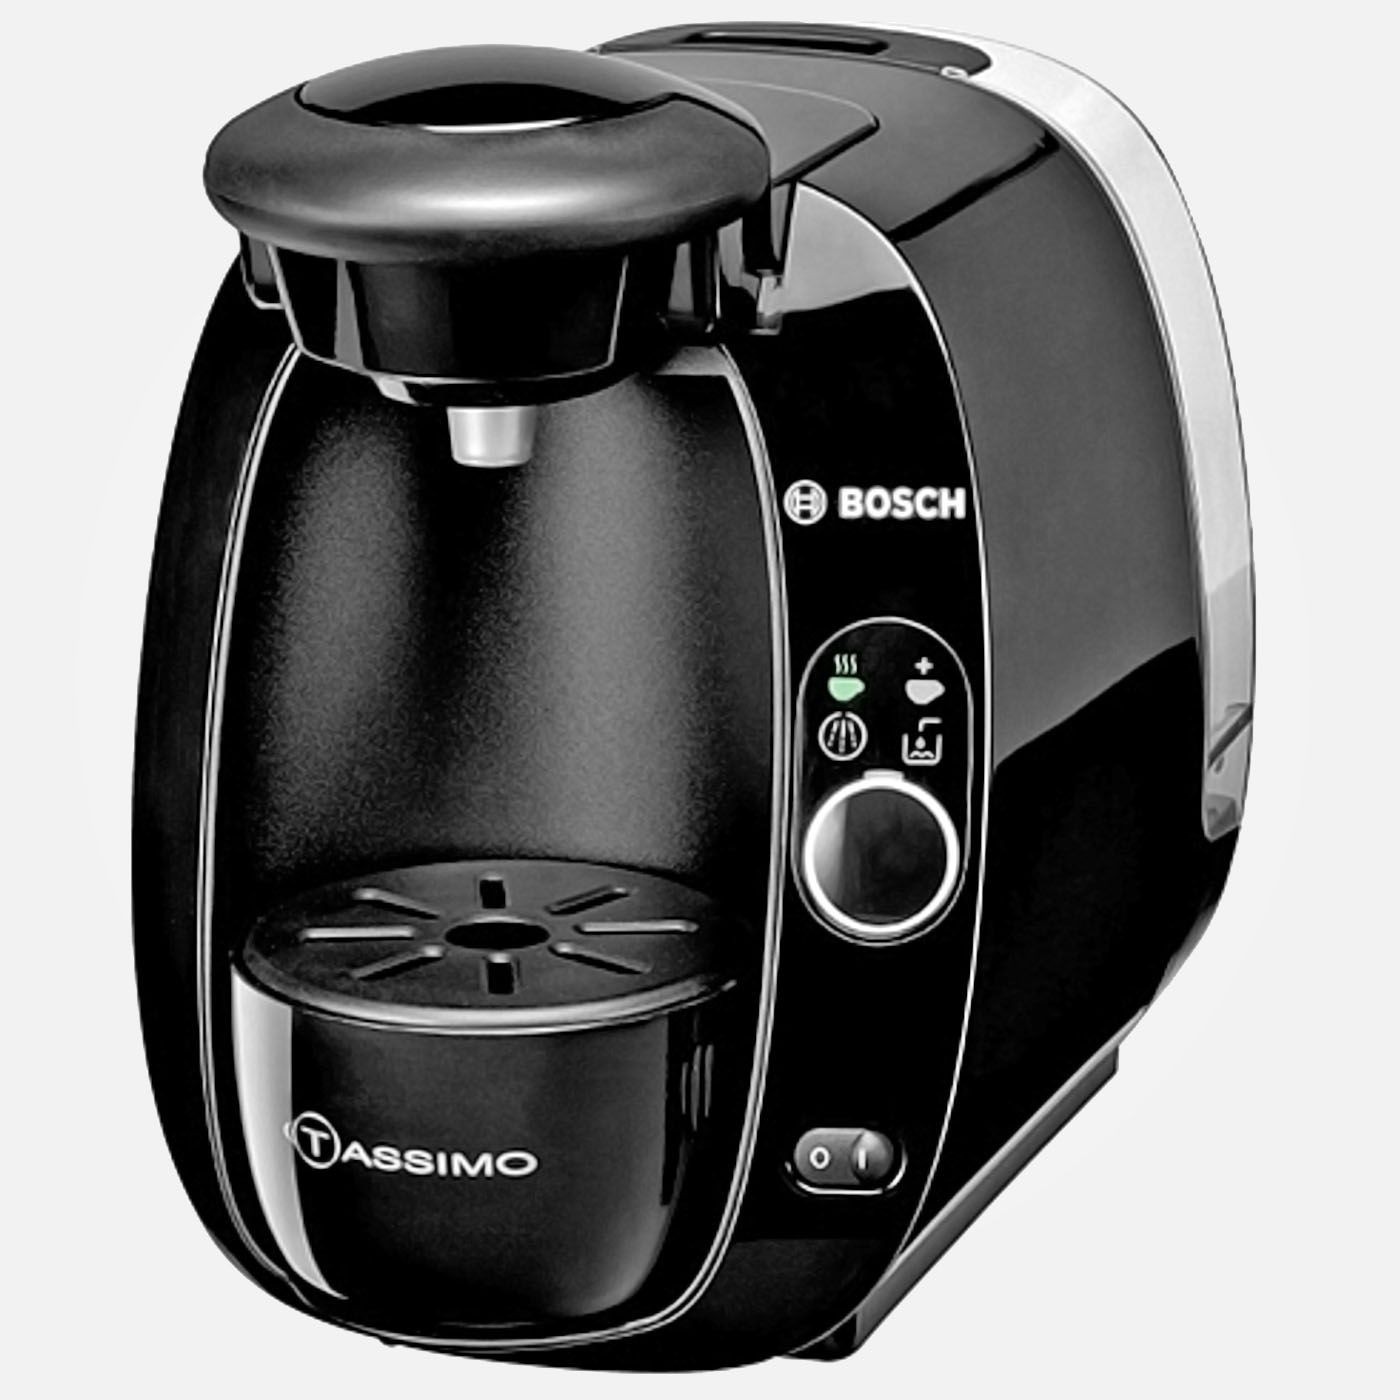 tassimo coffee machine if i 39 m only having one cup a day it 39 s gonna be a good one bought this. Black Bedroom Furniture Sets. Home Design Ideas